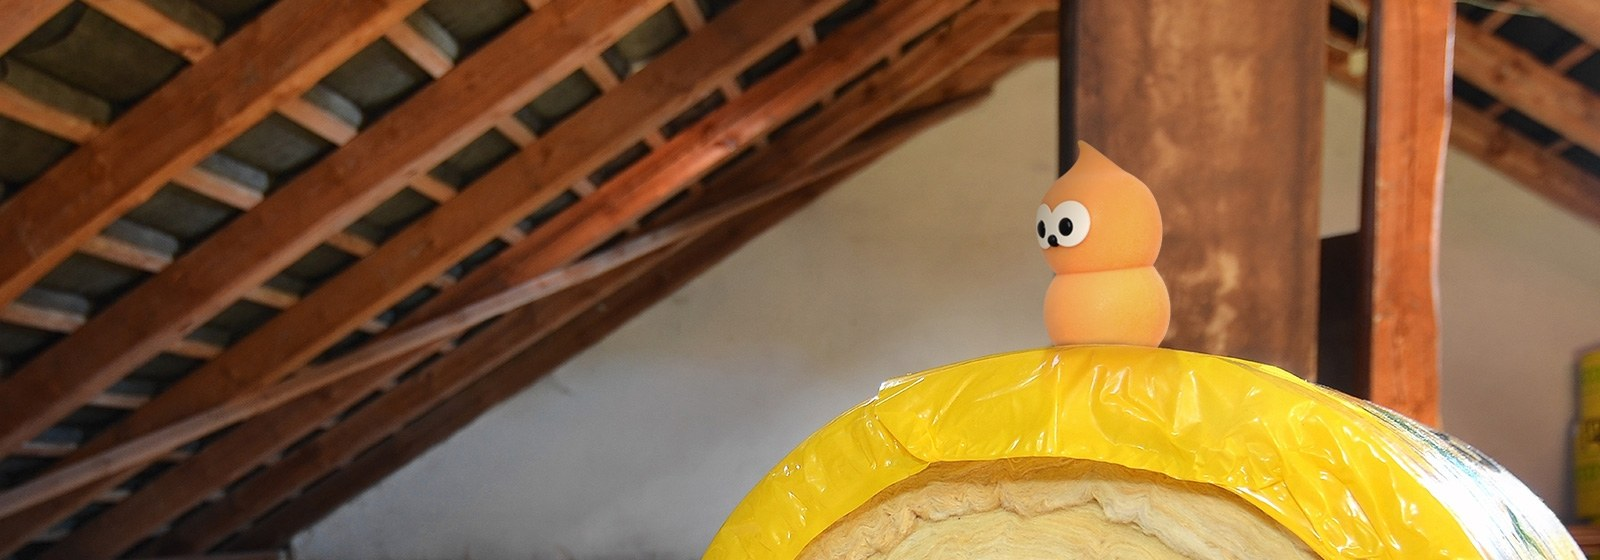 Zingy Sitting On Roll Of Loft Insulation In A Loft